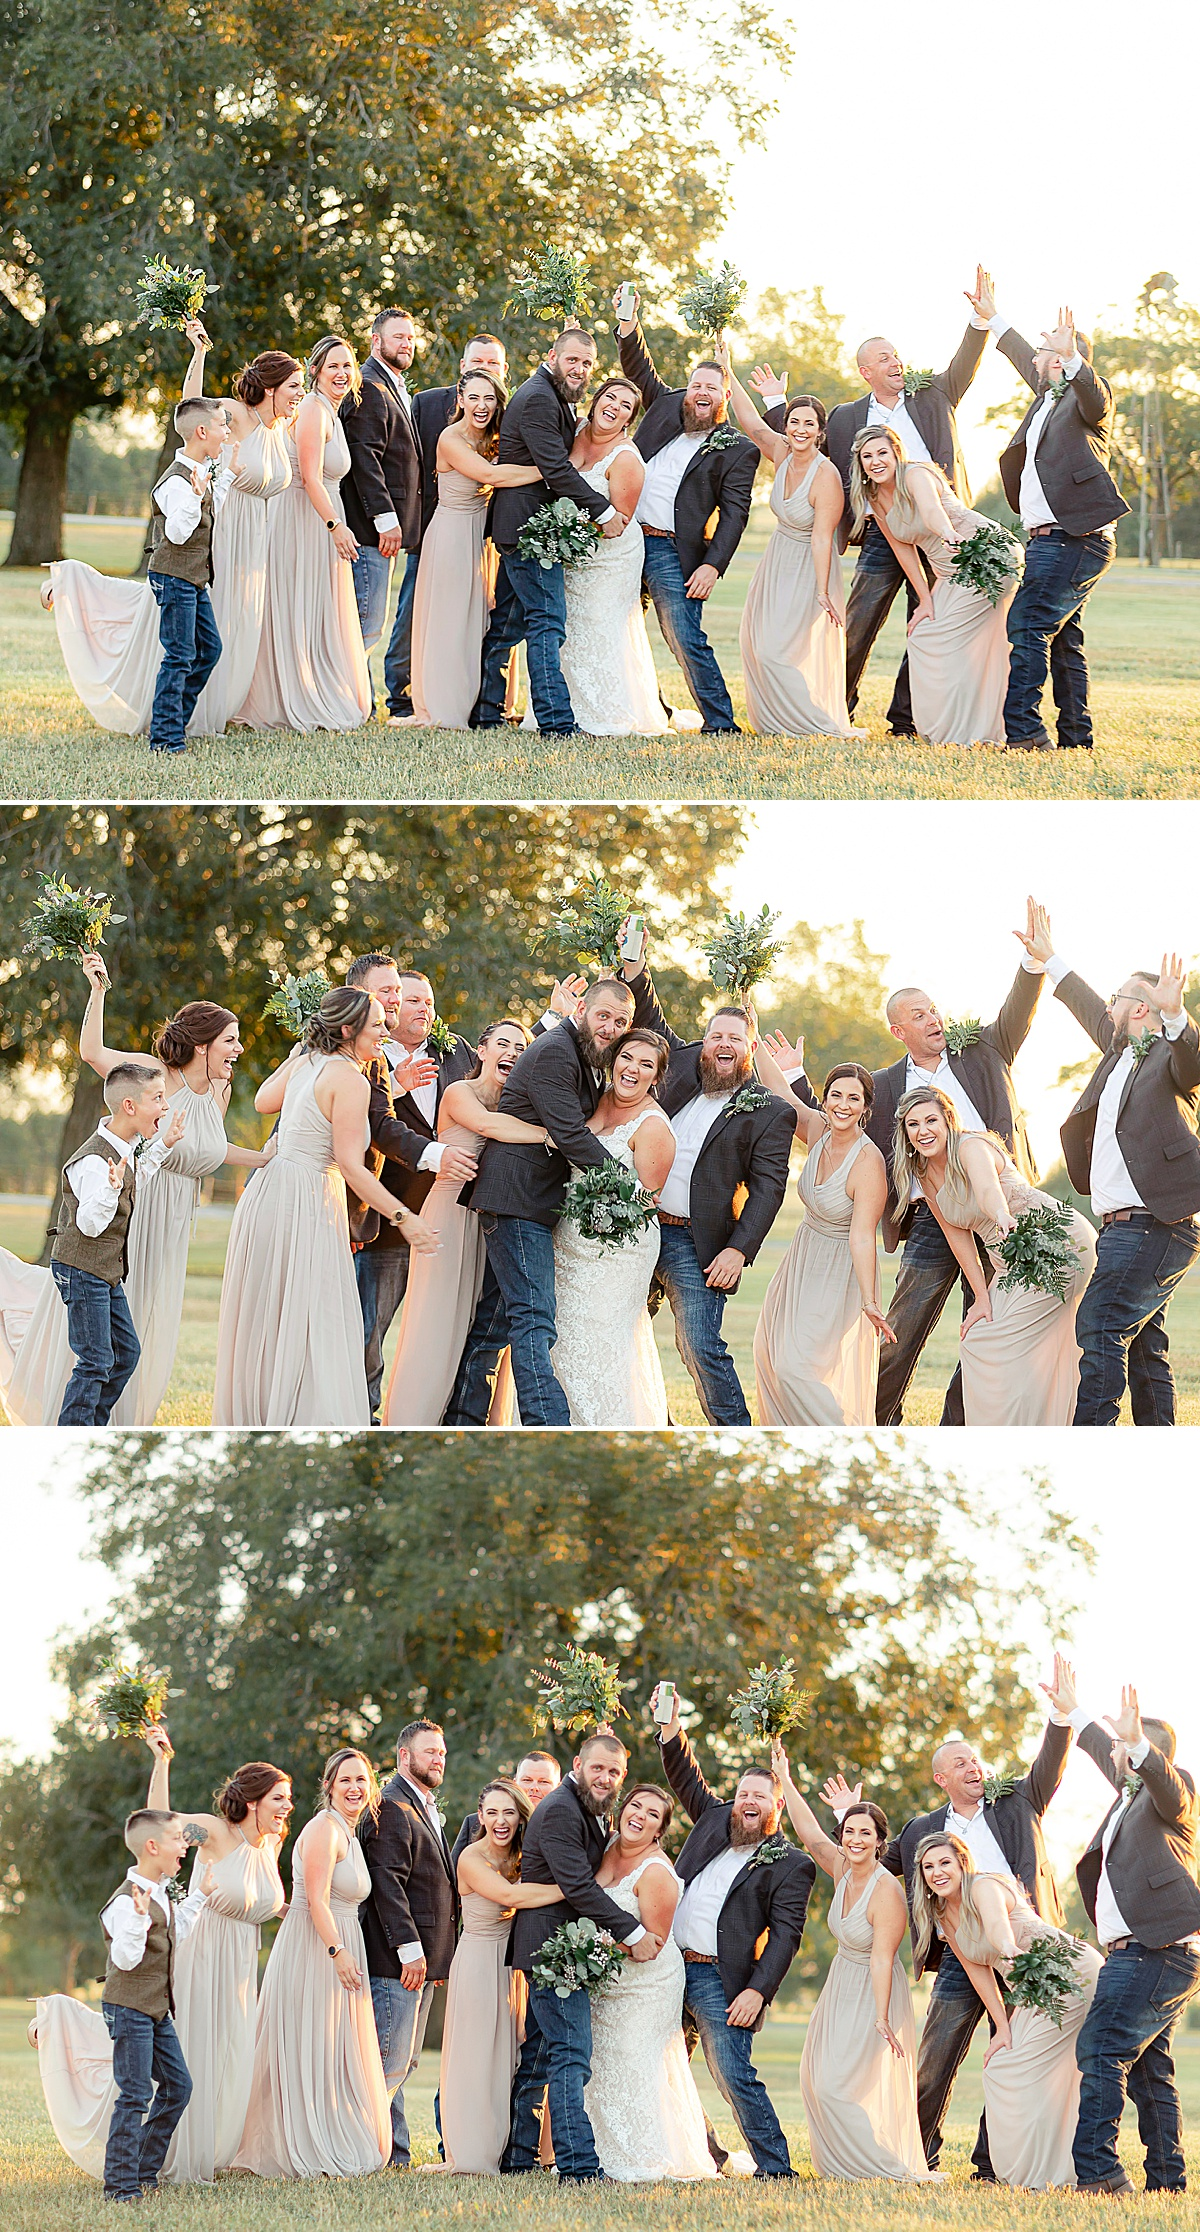 Rustic-Texas-Wedding-Hollow-Creek-Ranch-Carly-Barton-Photography_0067.jpg